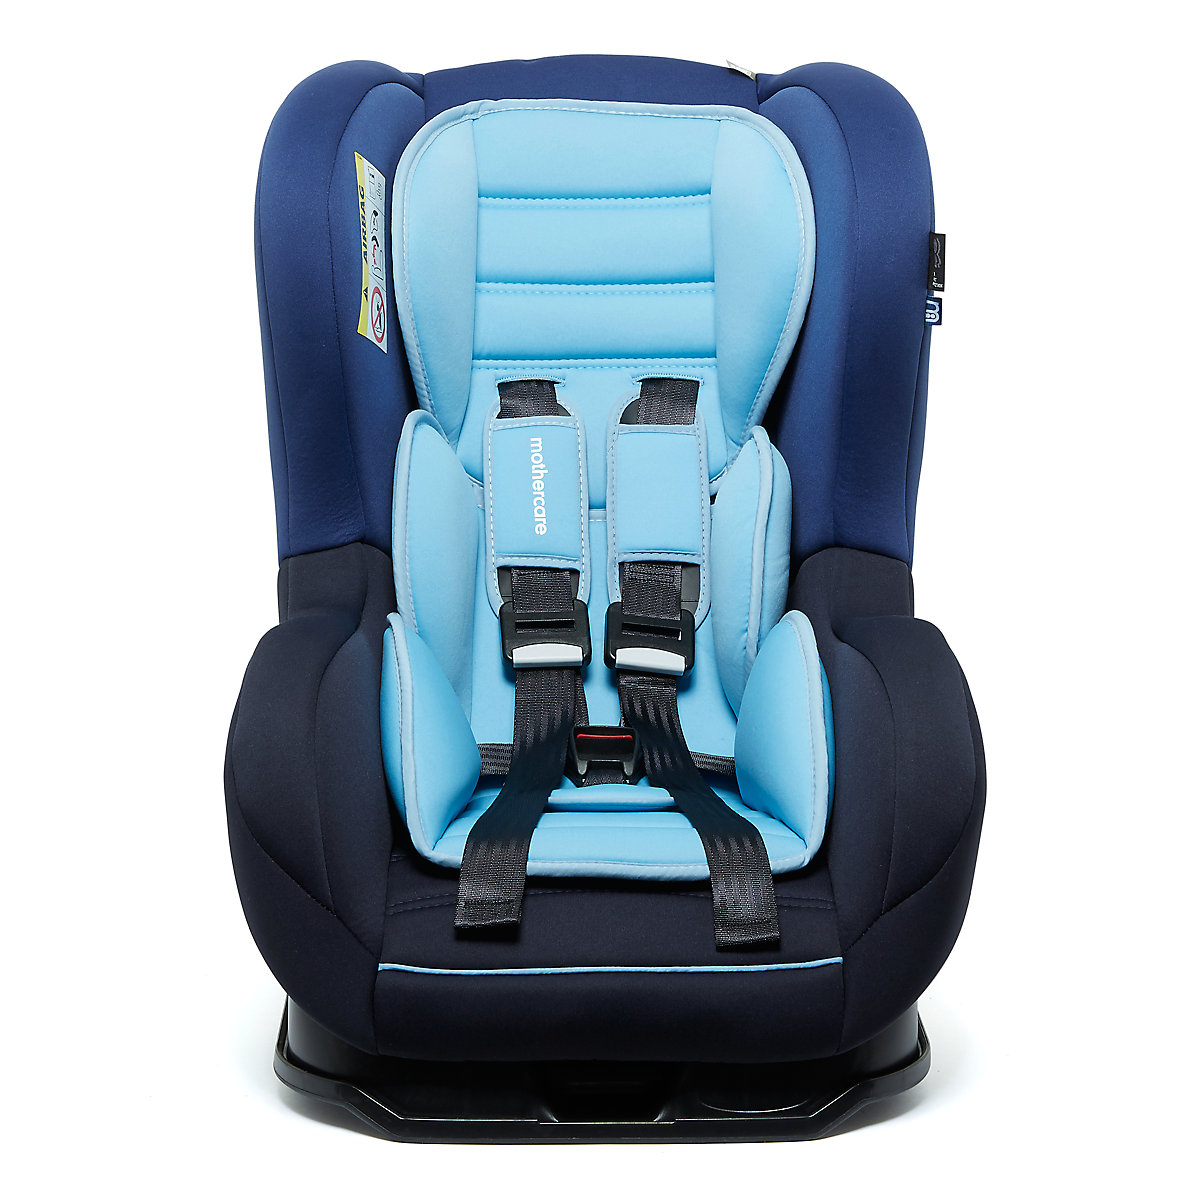 Mothercare Madrid Combination Car Seat Netmums Reviews